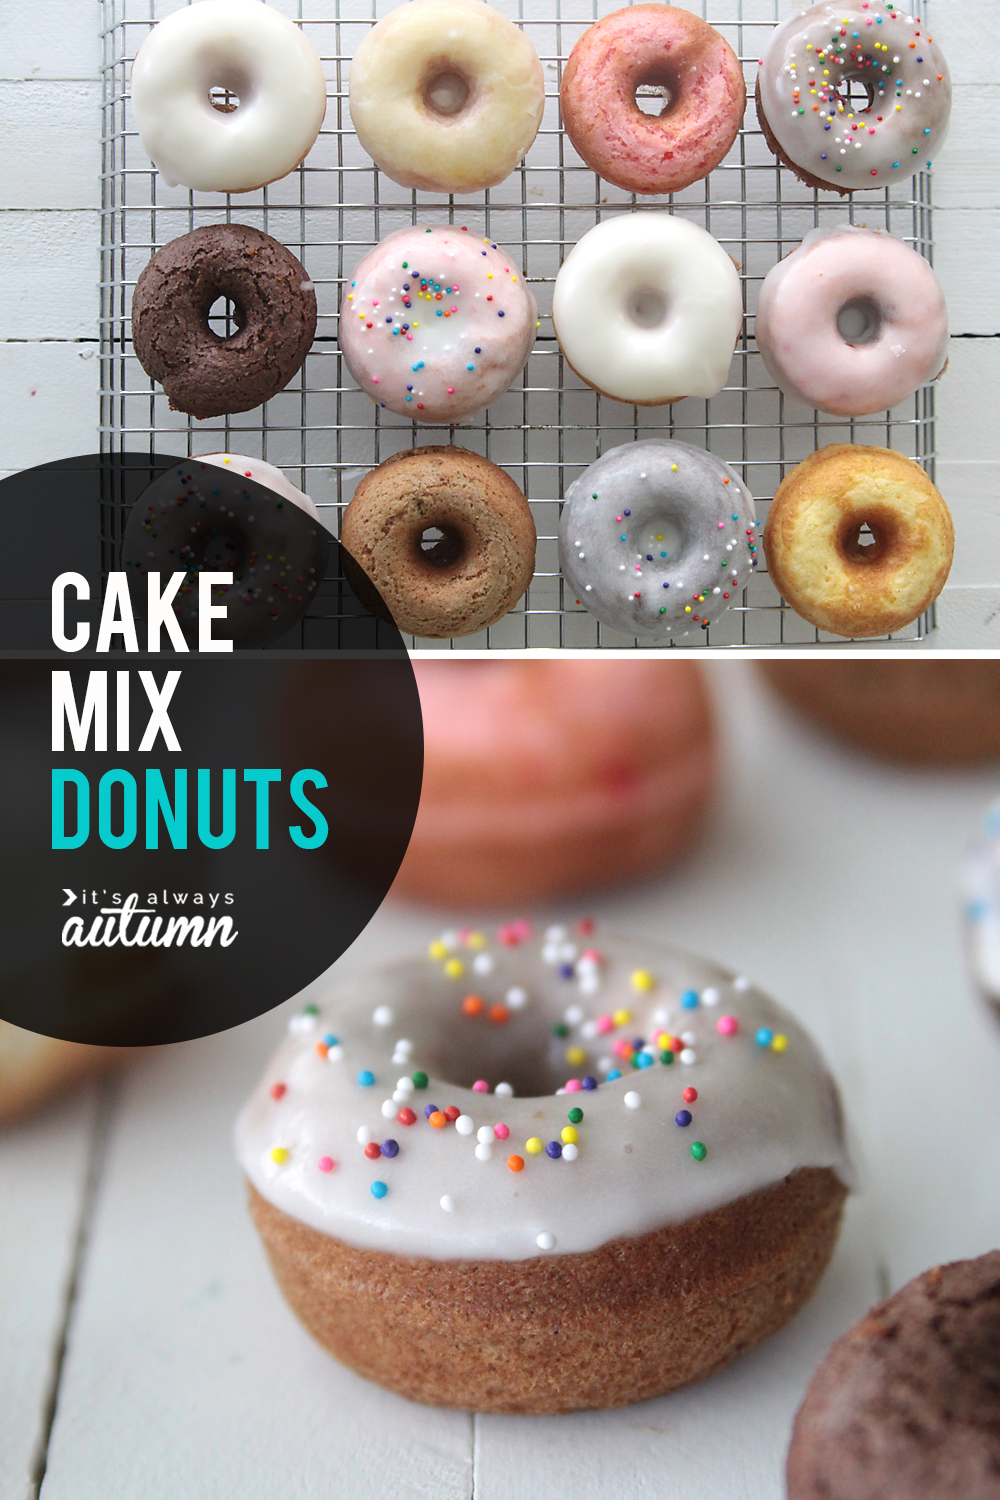 How to make cake mix donuts! This easy mini donut recipe is baked, not fried, and only takes 15 minutes start to finish.